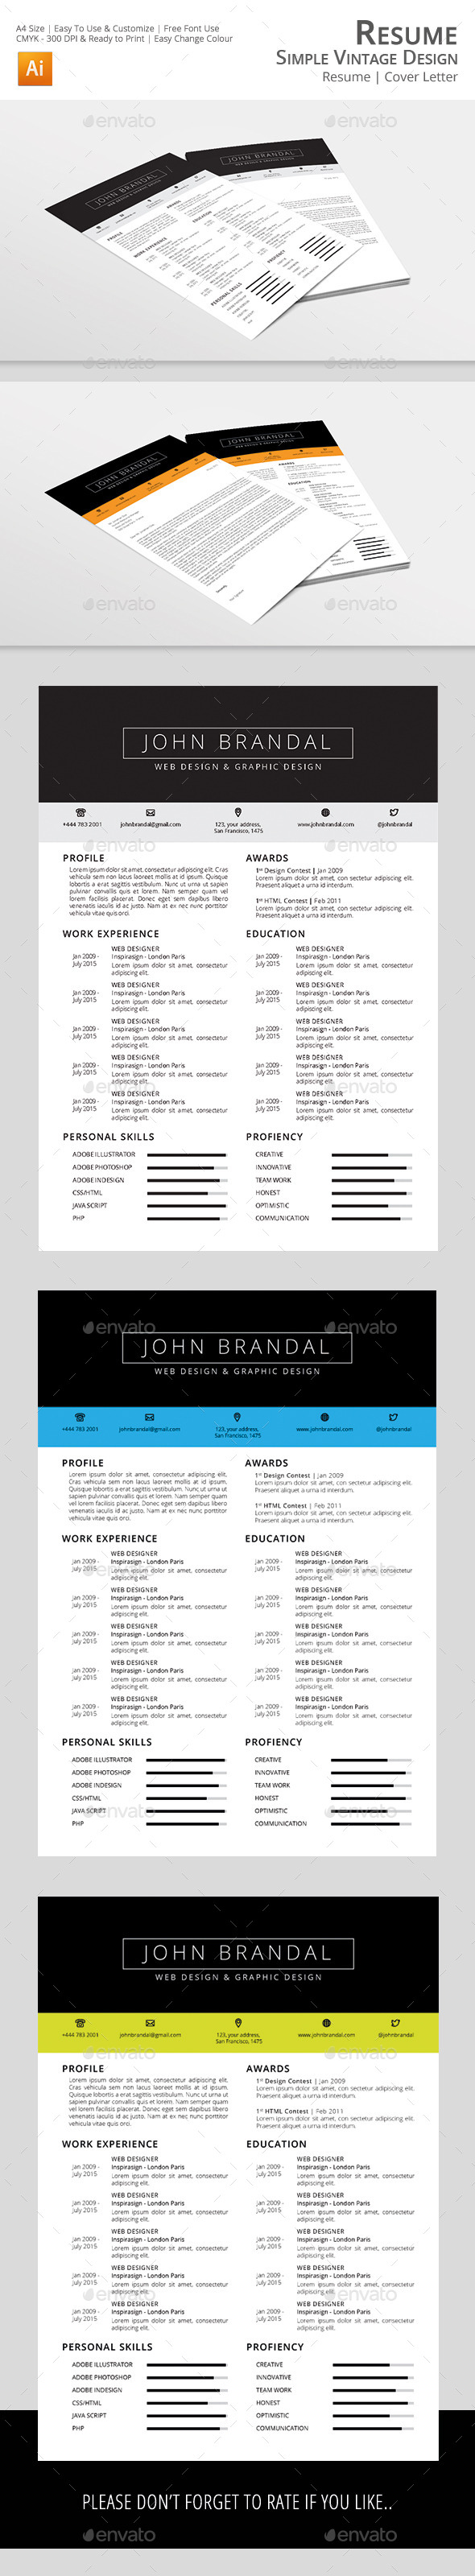 GraphicRiver Resume Simple Vintage Design 11603640